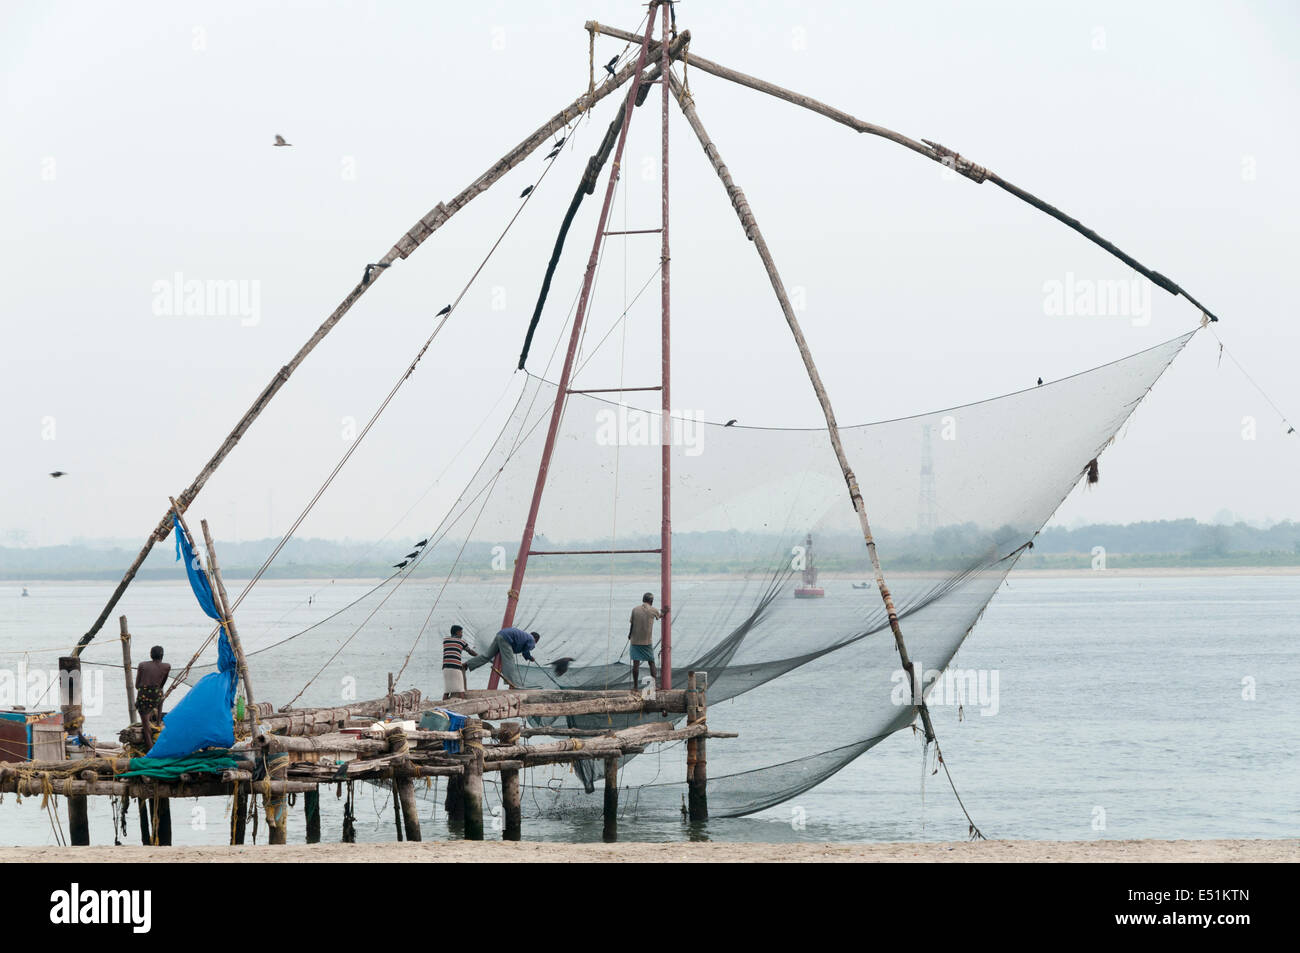 Chinese net, Fort kochi - Stock Image